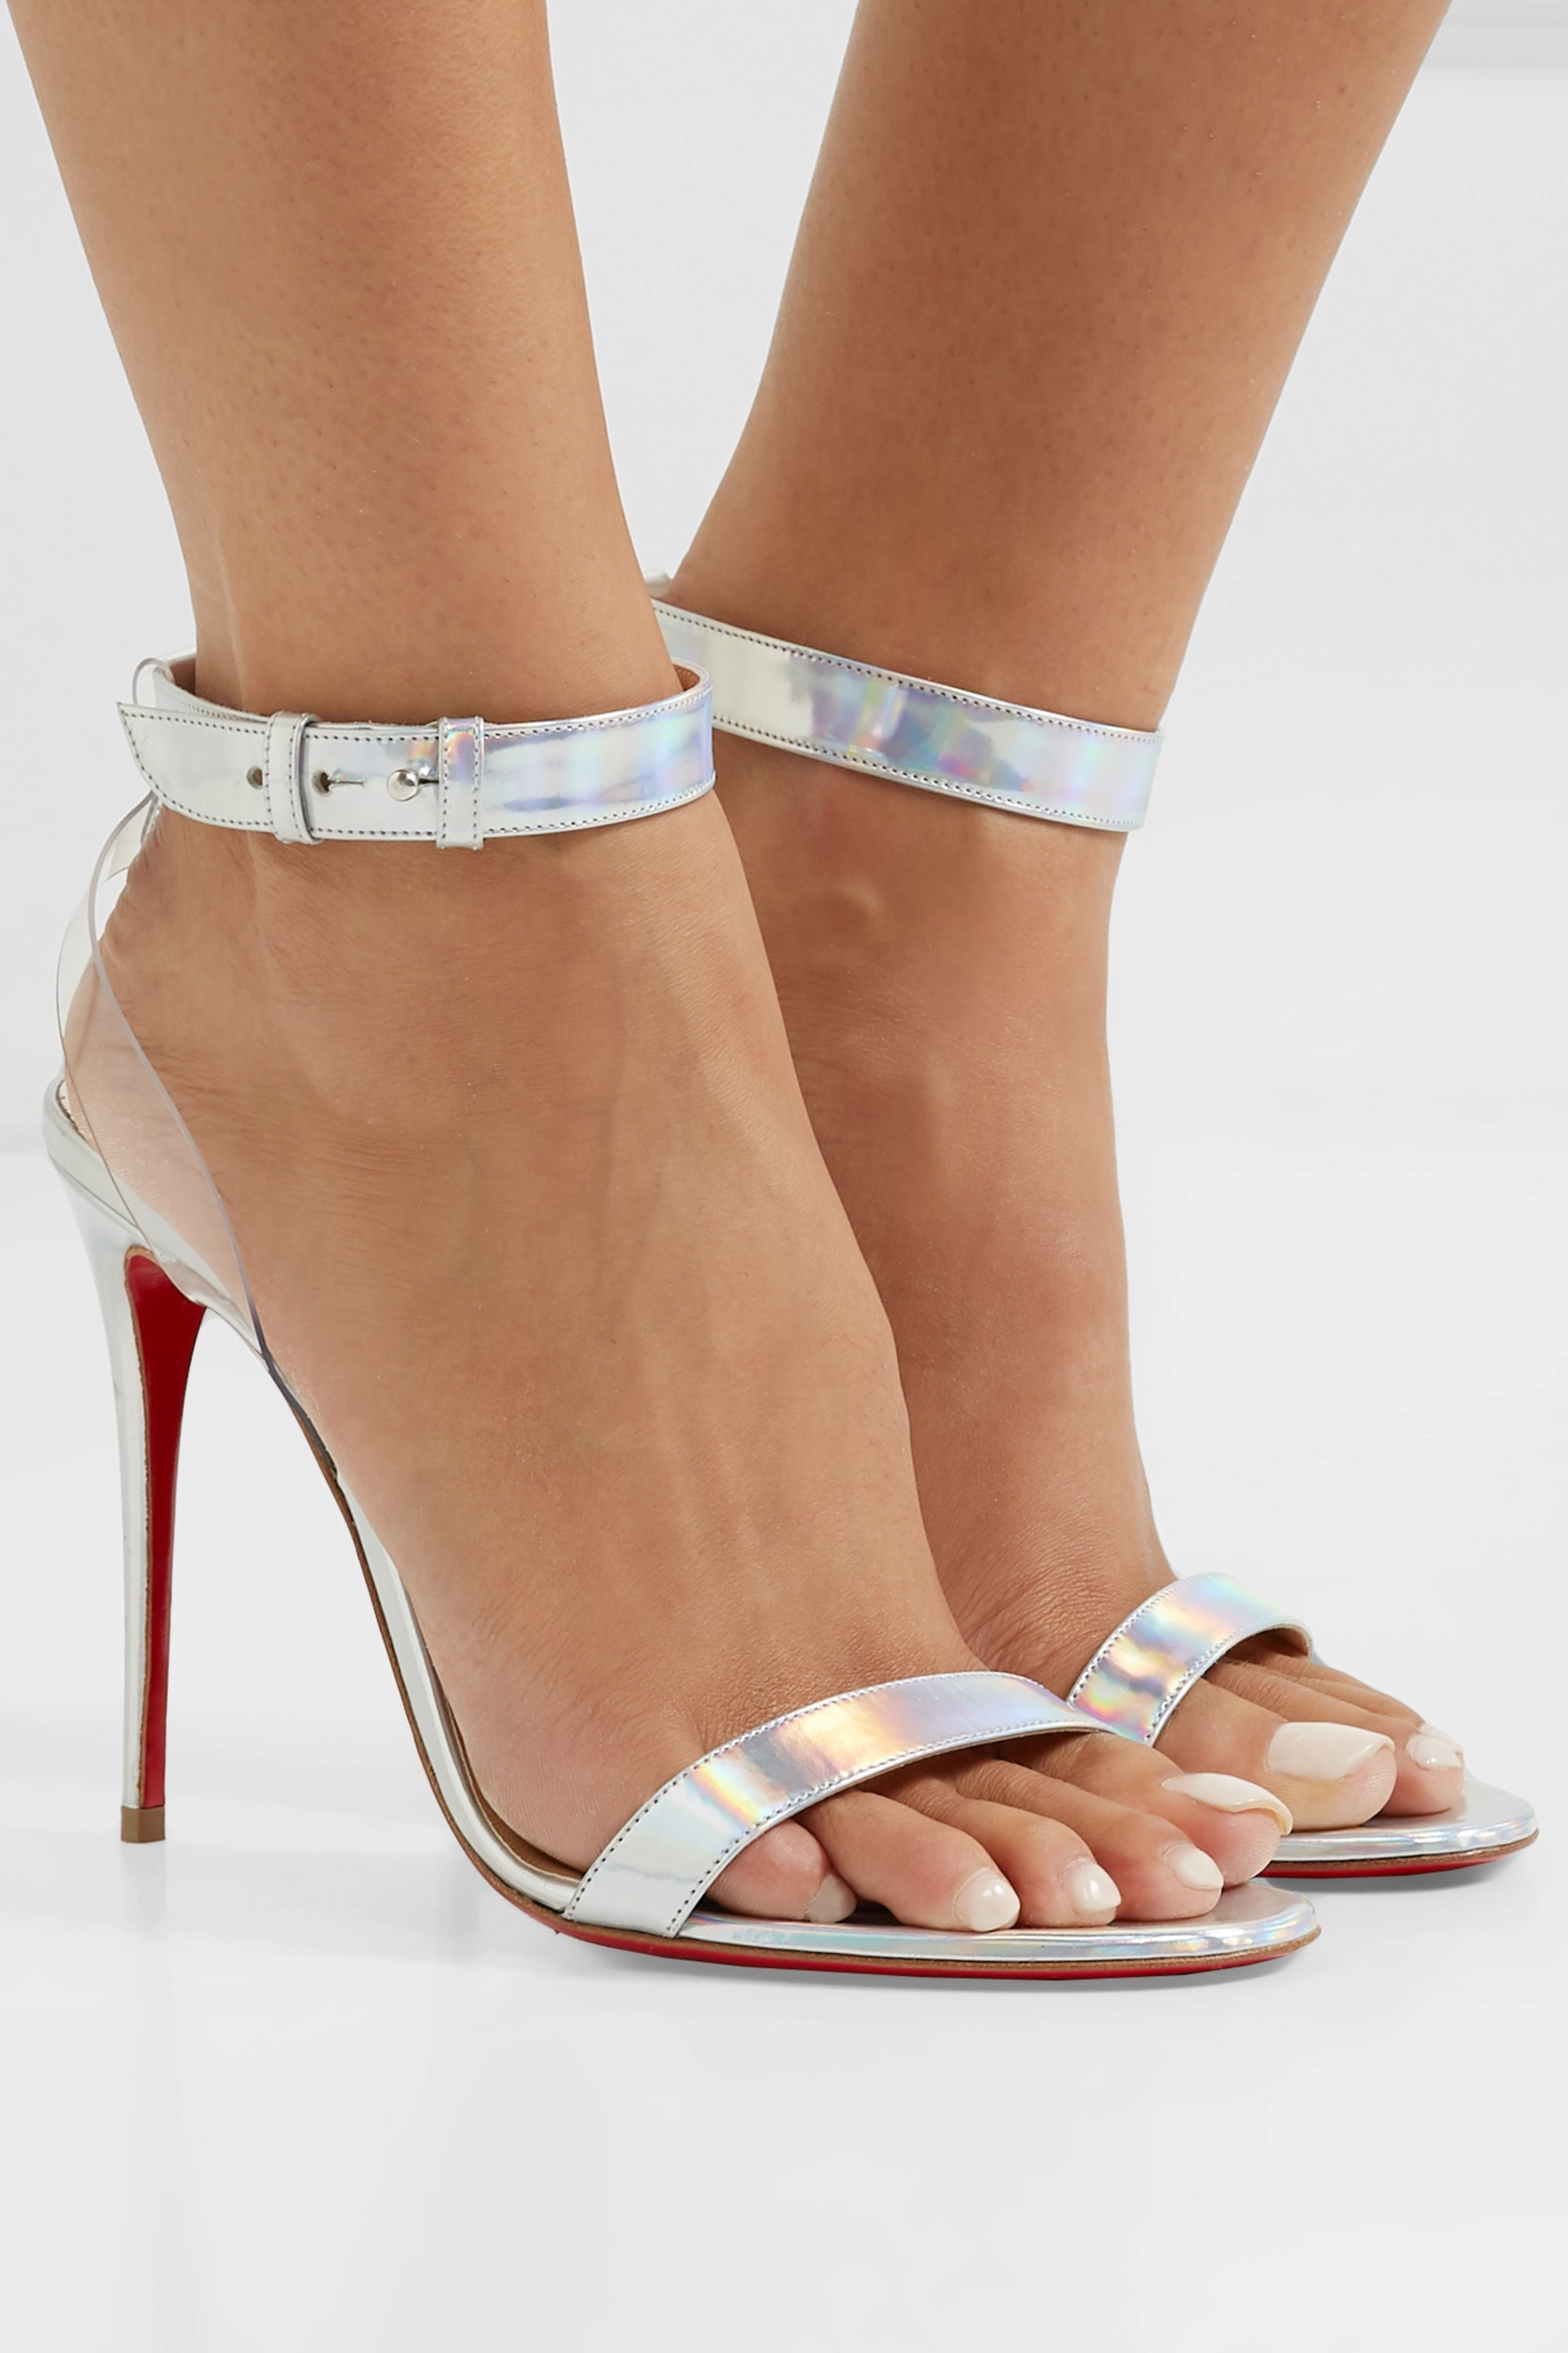 Christian Louboutin Jonatina 100 PVC-trimmed iridescent leather sandals